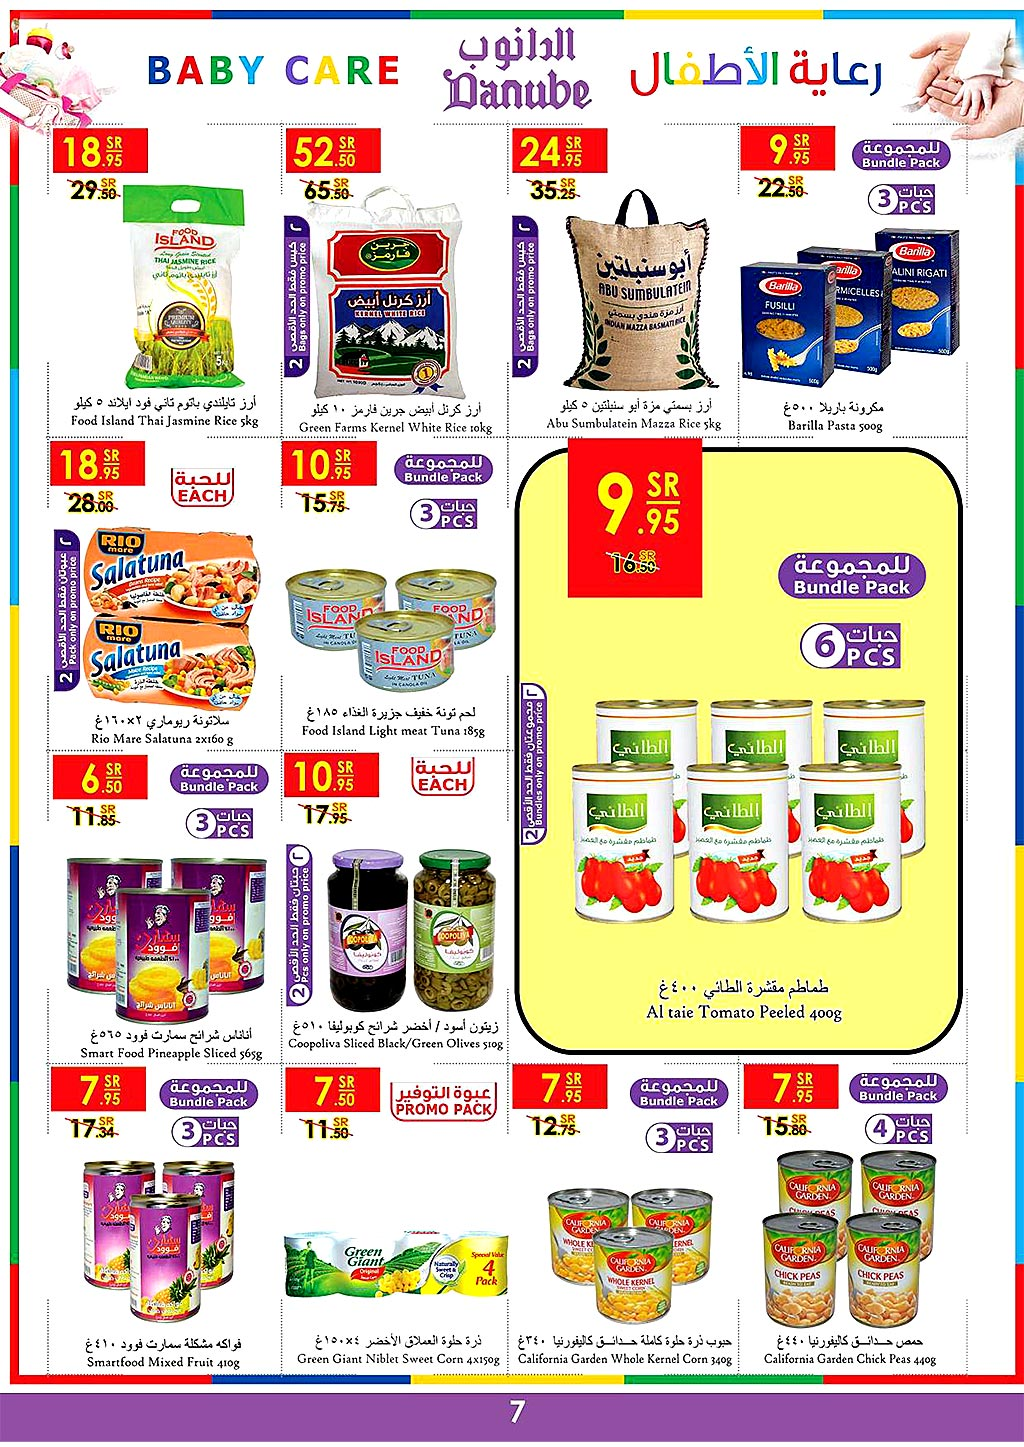 danube offers from 24july to 30july 2019 page number 6 عروض الدانوب من 24 يوليو حتى 30 يوليو 2019 صفحة رقم 6